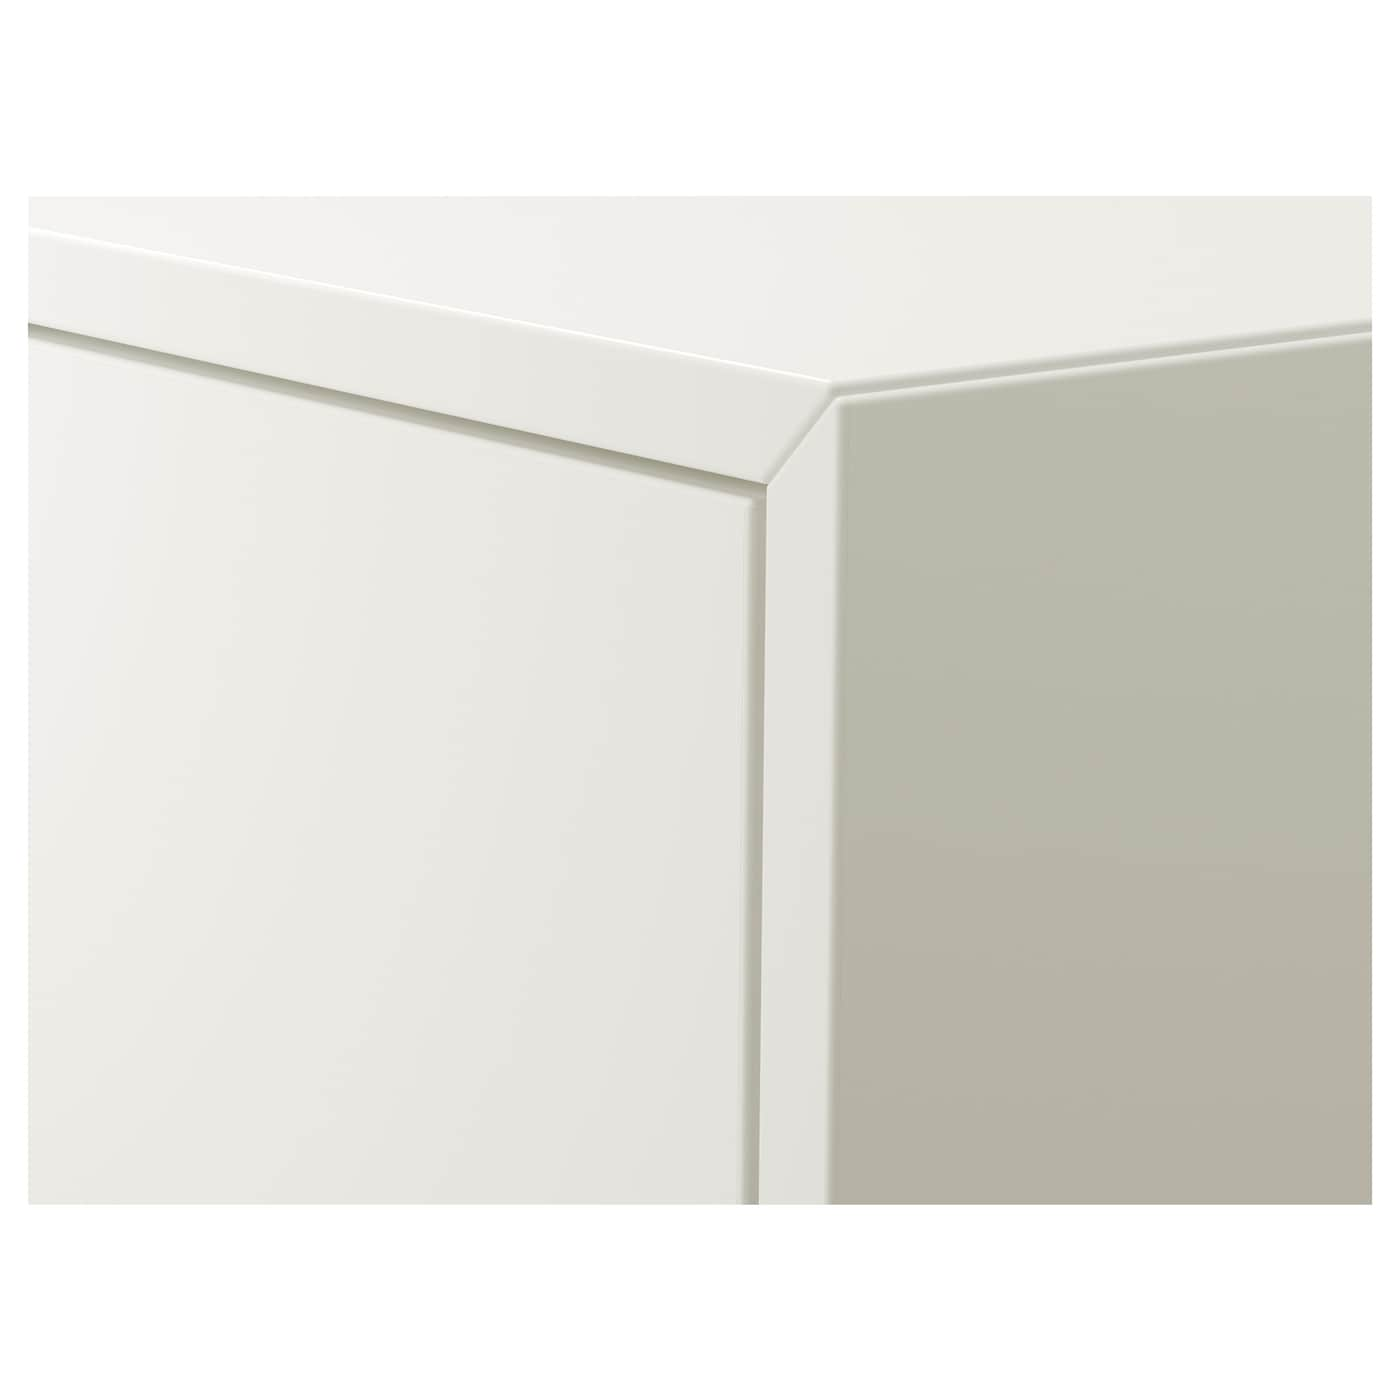 """EKET Cabinet with 2 doors and 2 shelves, white, 27 1/2x9 7/8x27 1/2 """""""